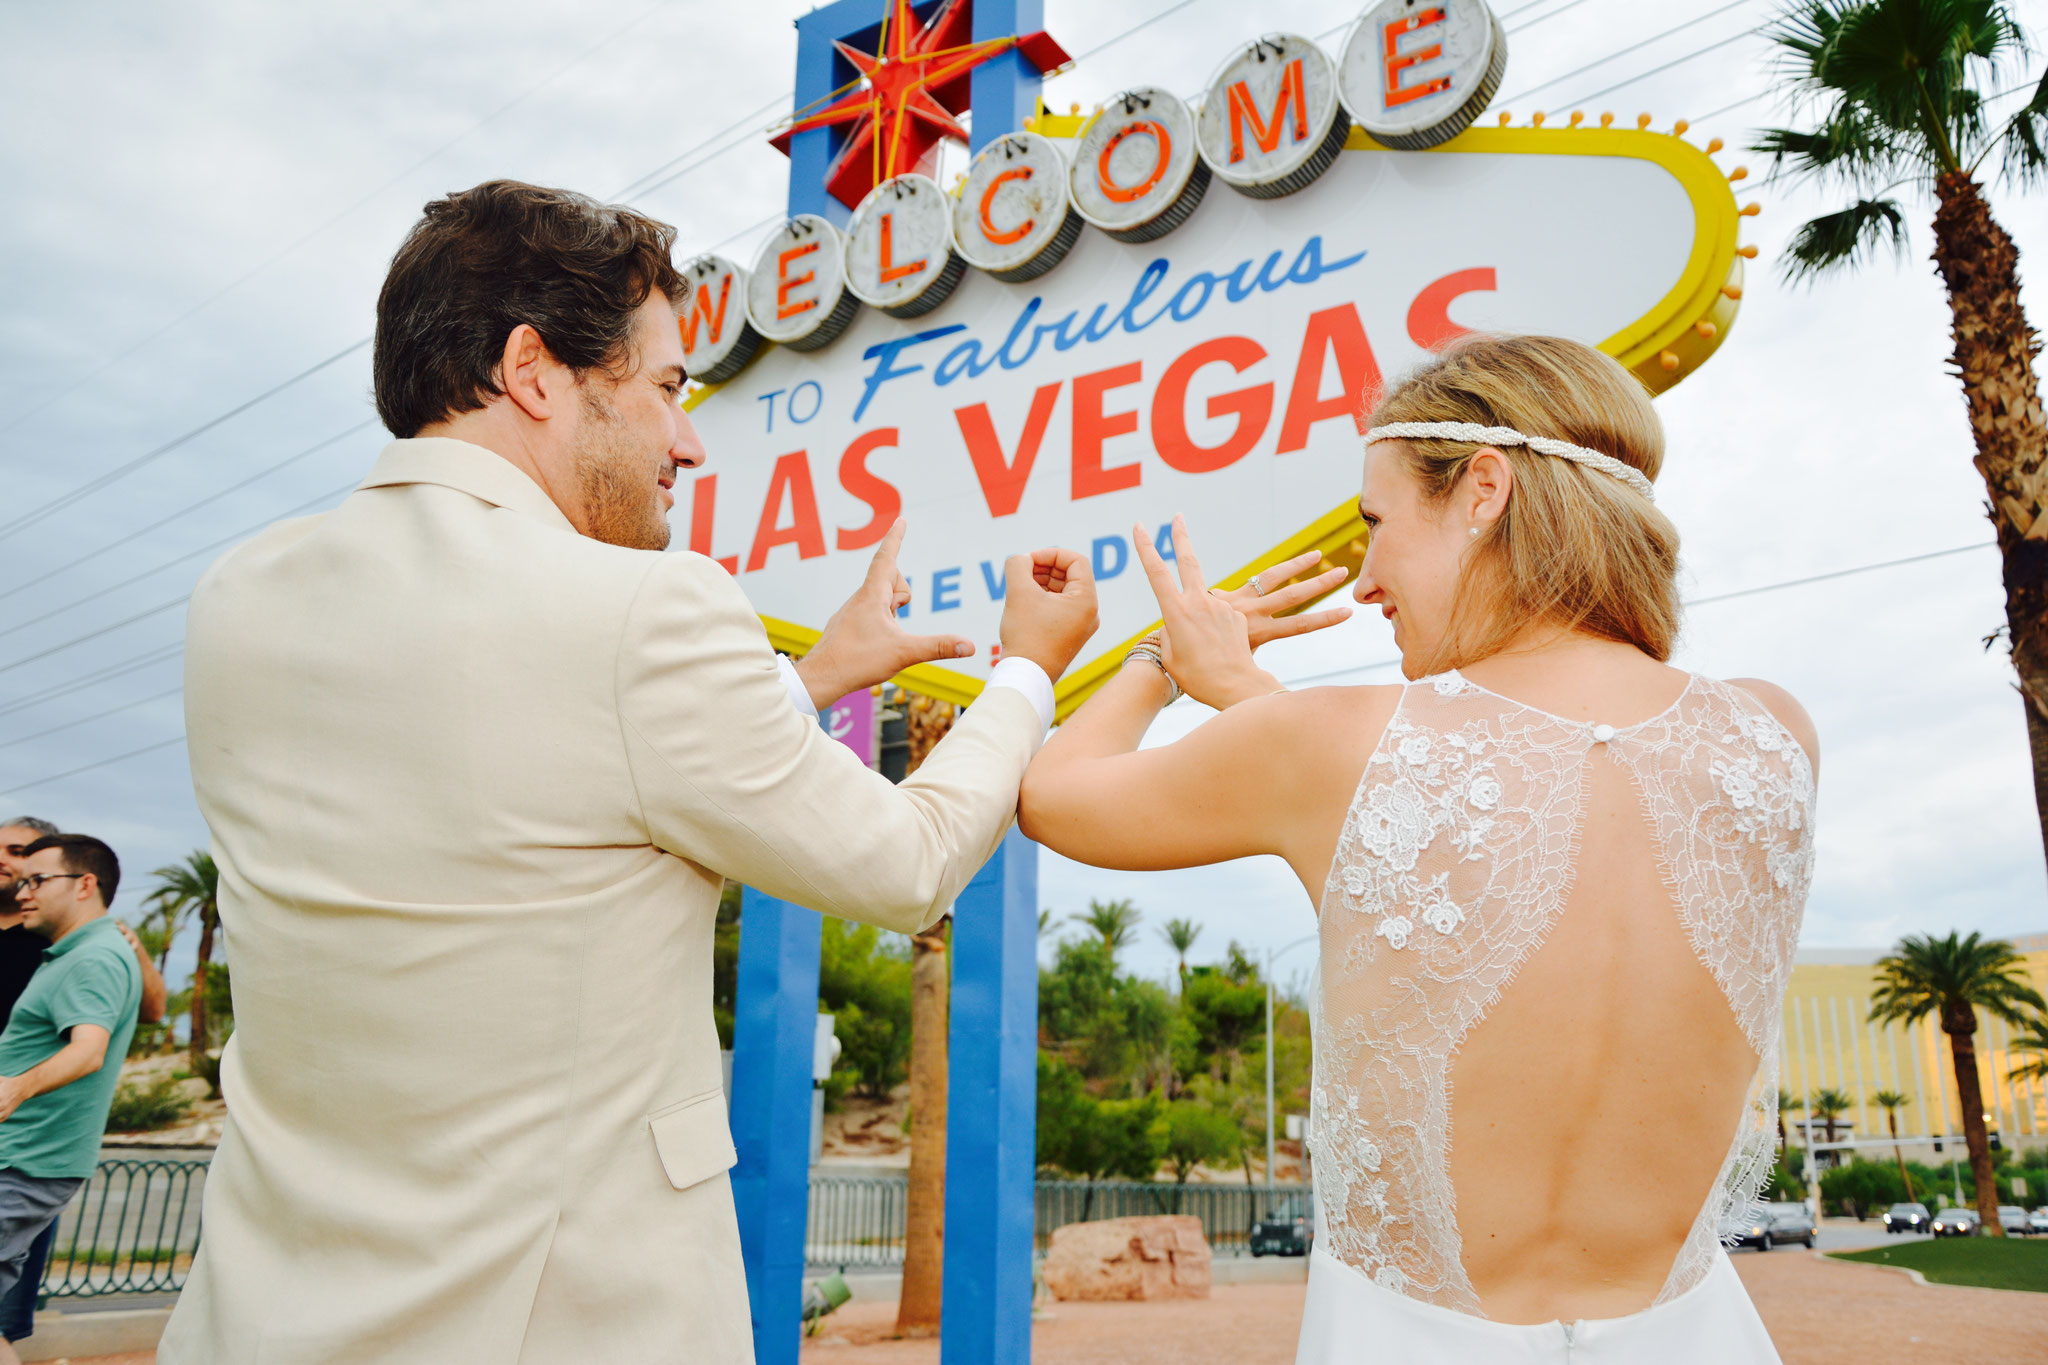 Fotoschooting am Welcome to Las Vegas Sign